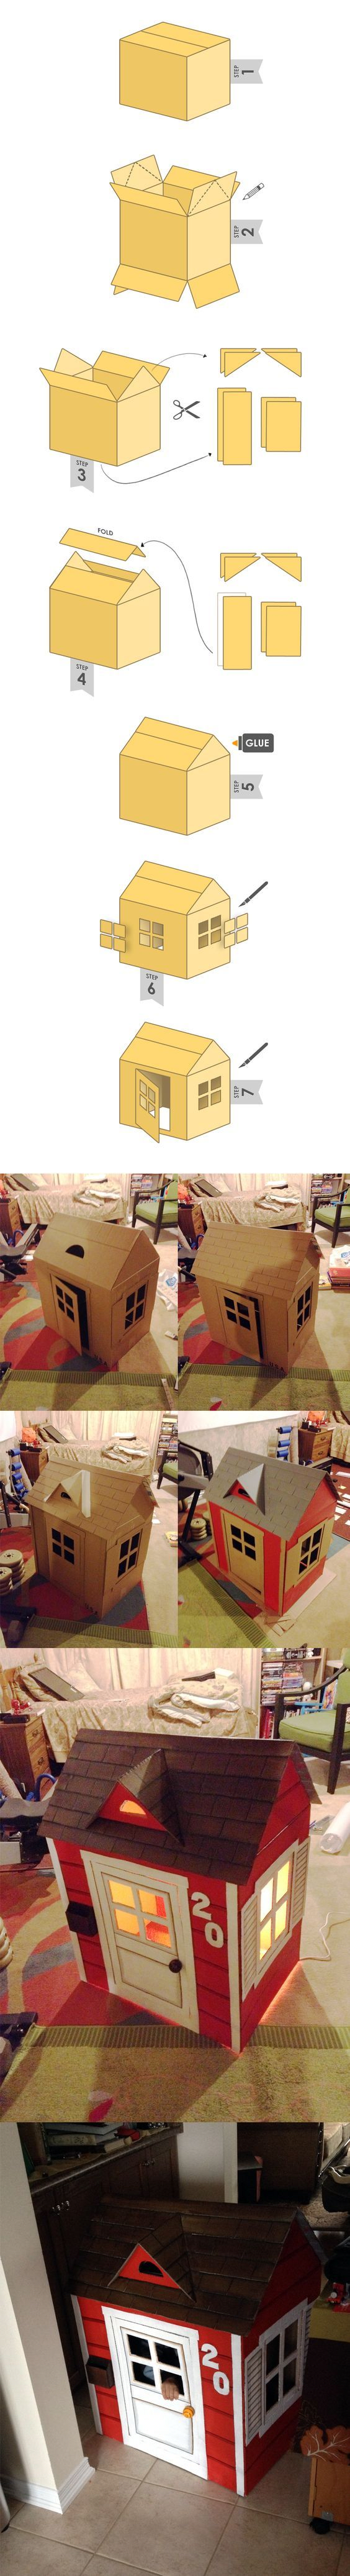 Cardboard box house. Step 0: Buy something that comes in a giant box. Proceed to Step 1.: